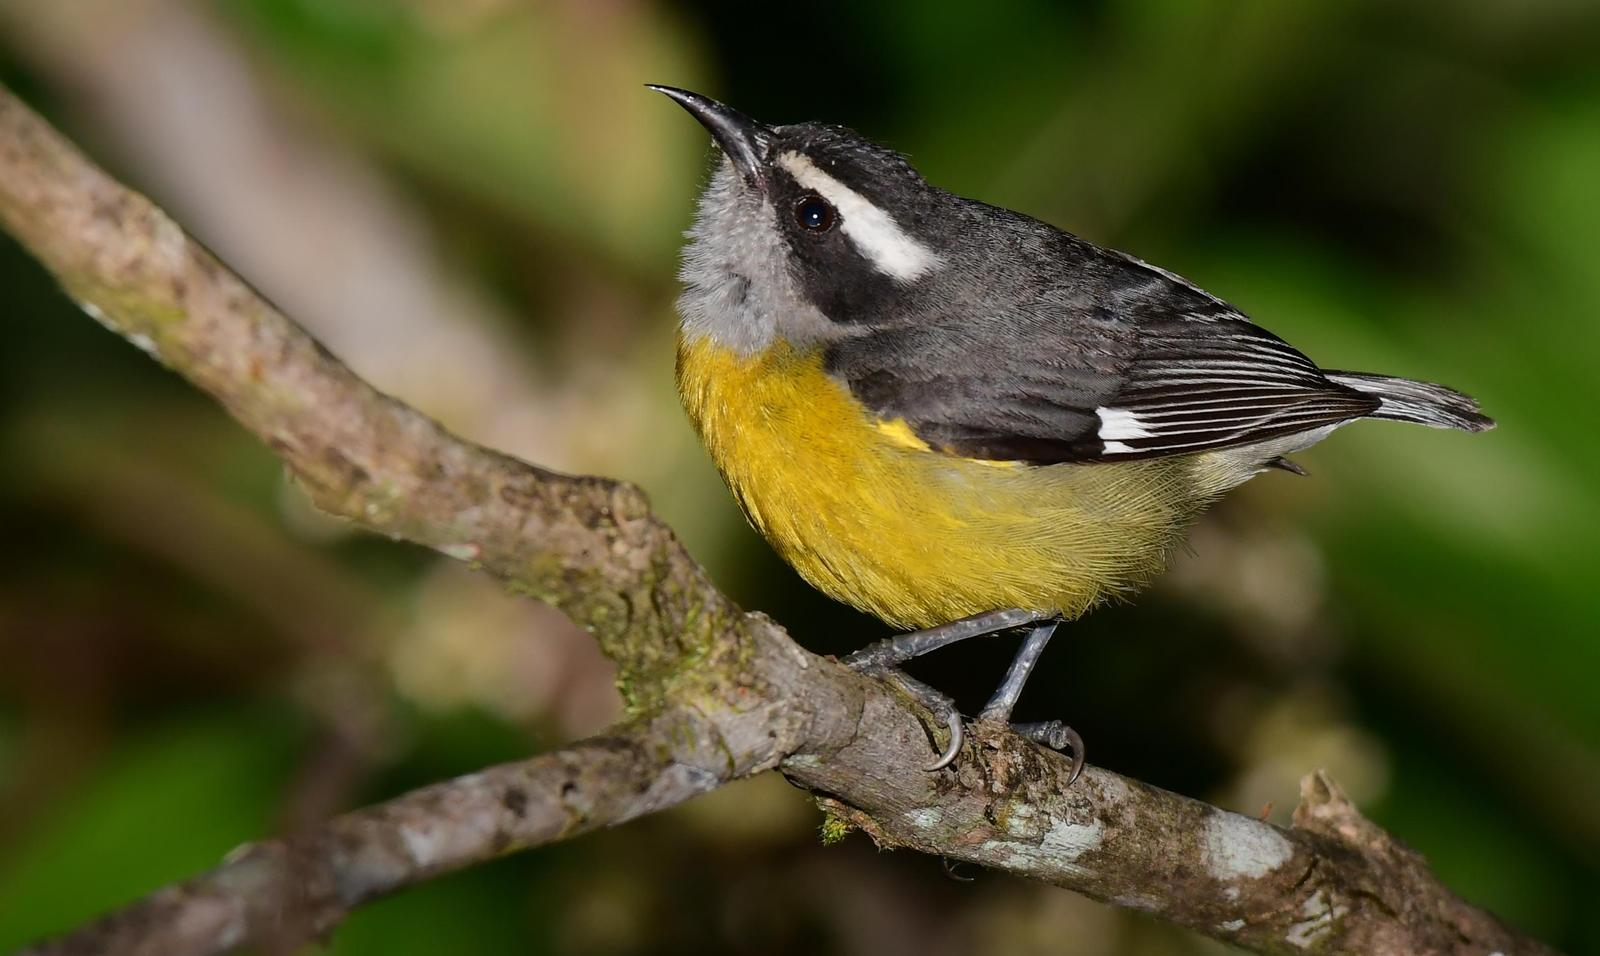 Bananaquit Photo by Gareth Rasberry